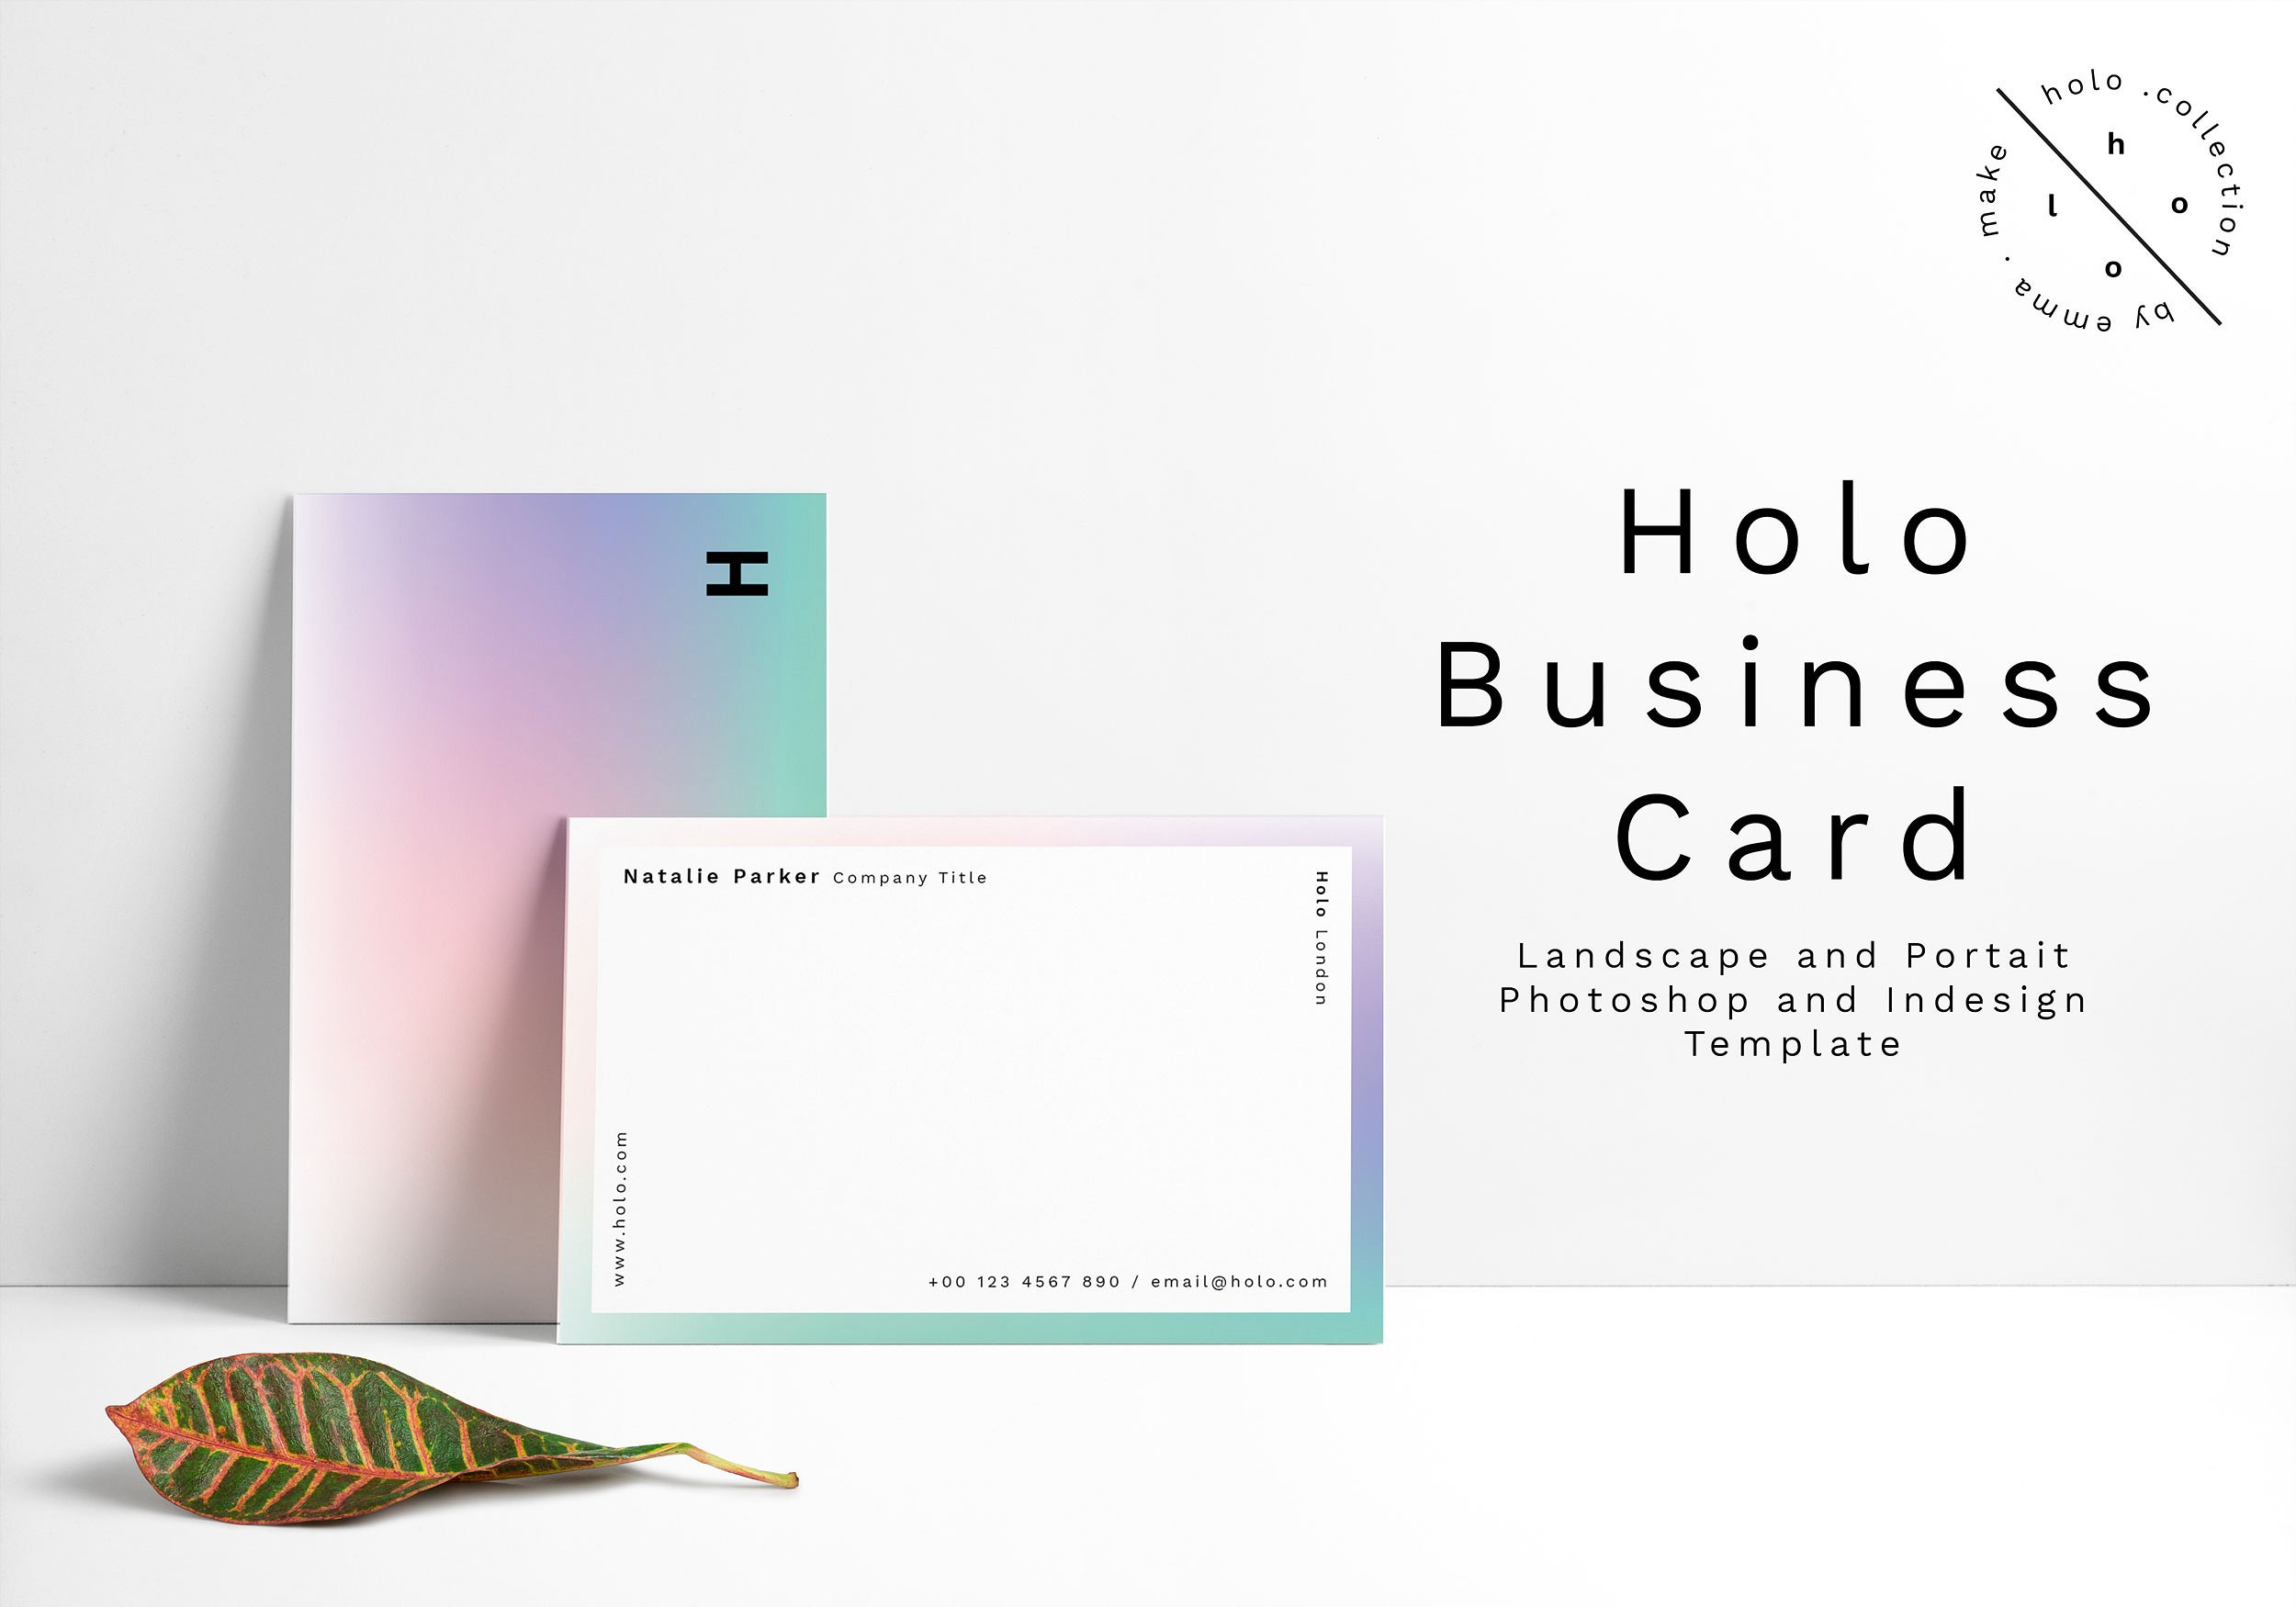 10+ Minimalist Business Card Designs and Examples - PSD, AI